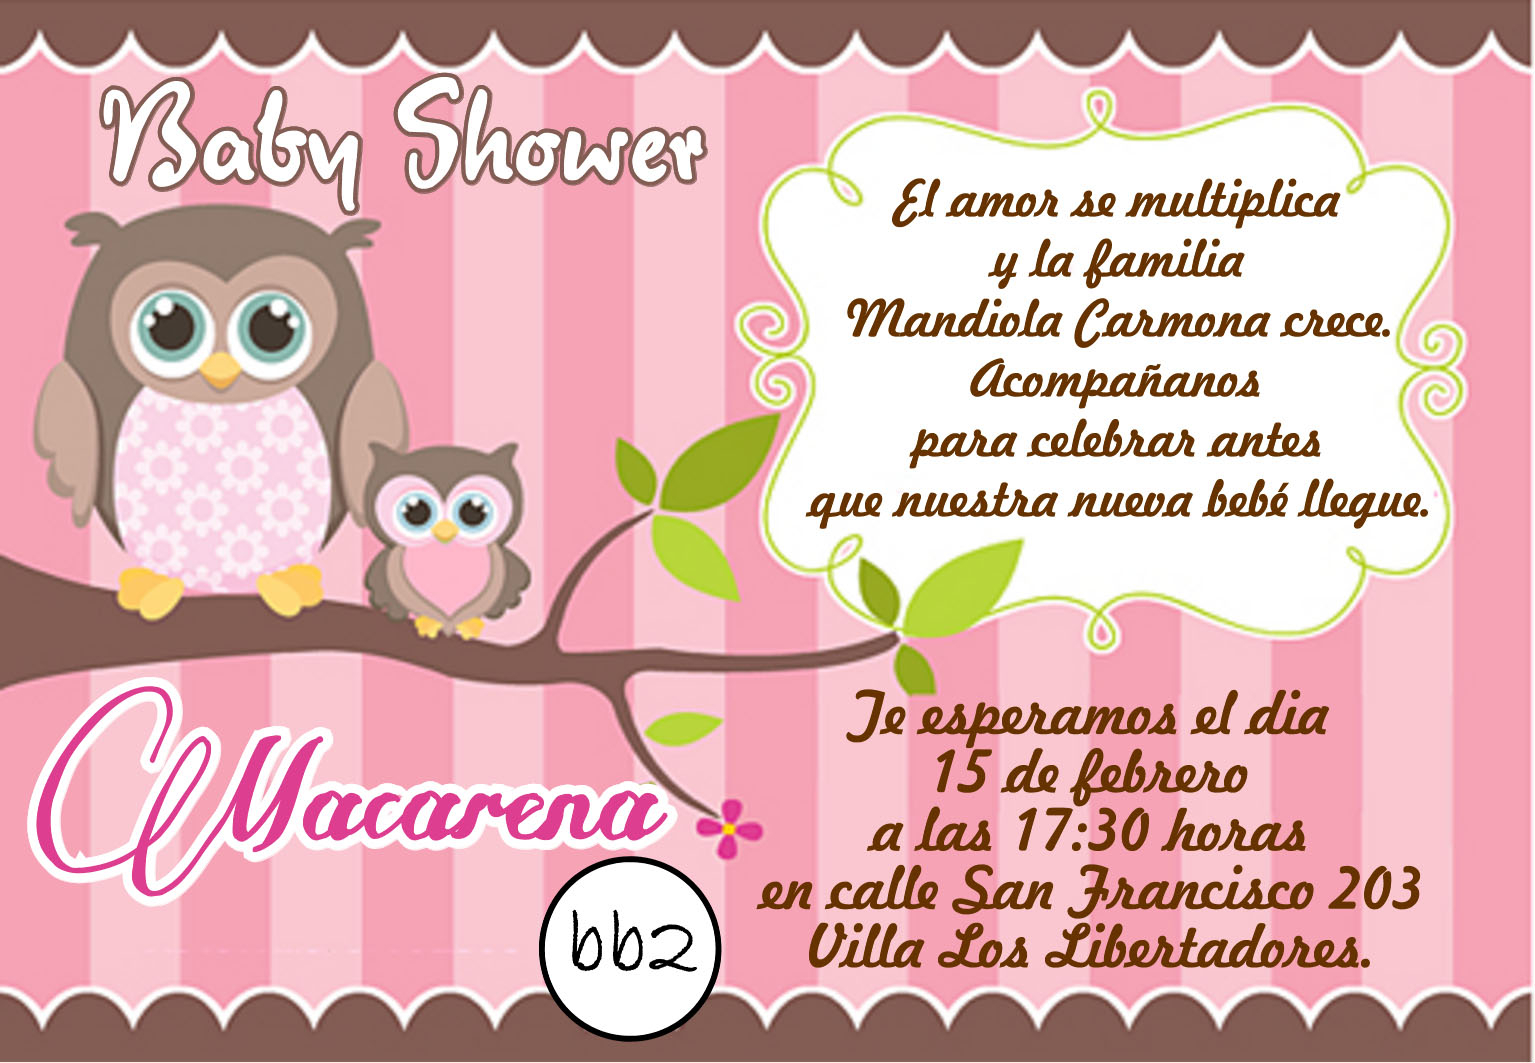 Modular Charming Ideas Tarjetas Baby Shower Dazzling Design Invitaciones intended for Lovely Tarjetas De Baby Shower